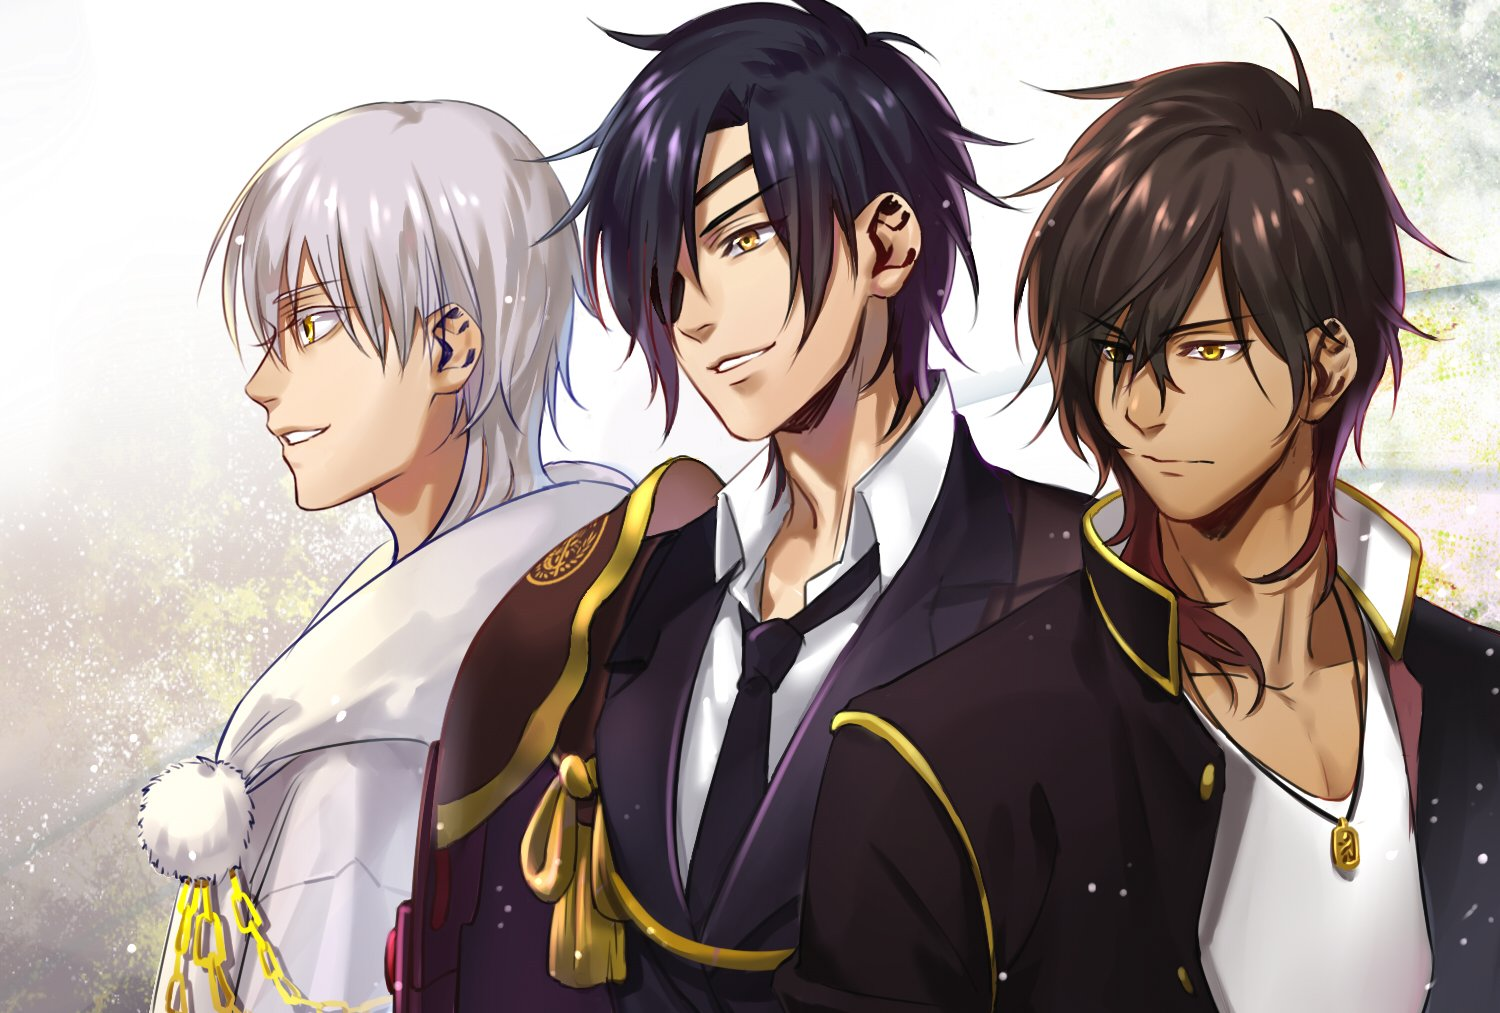 Date Gumi Touken Ranbu Game Anime Series Characters Boys